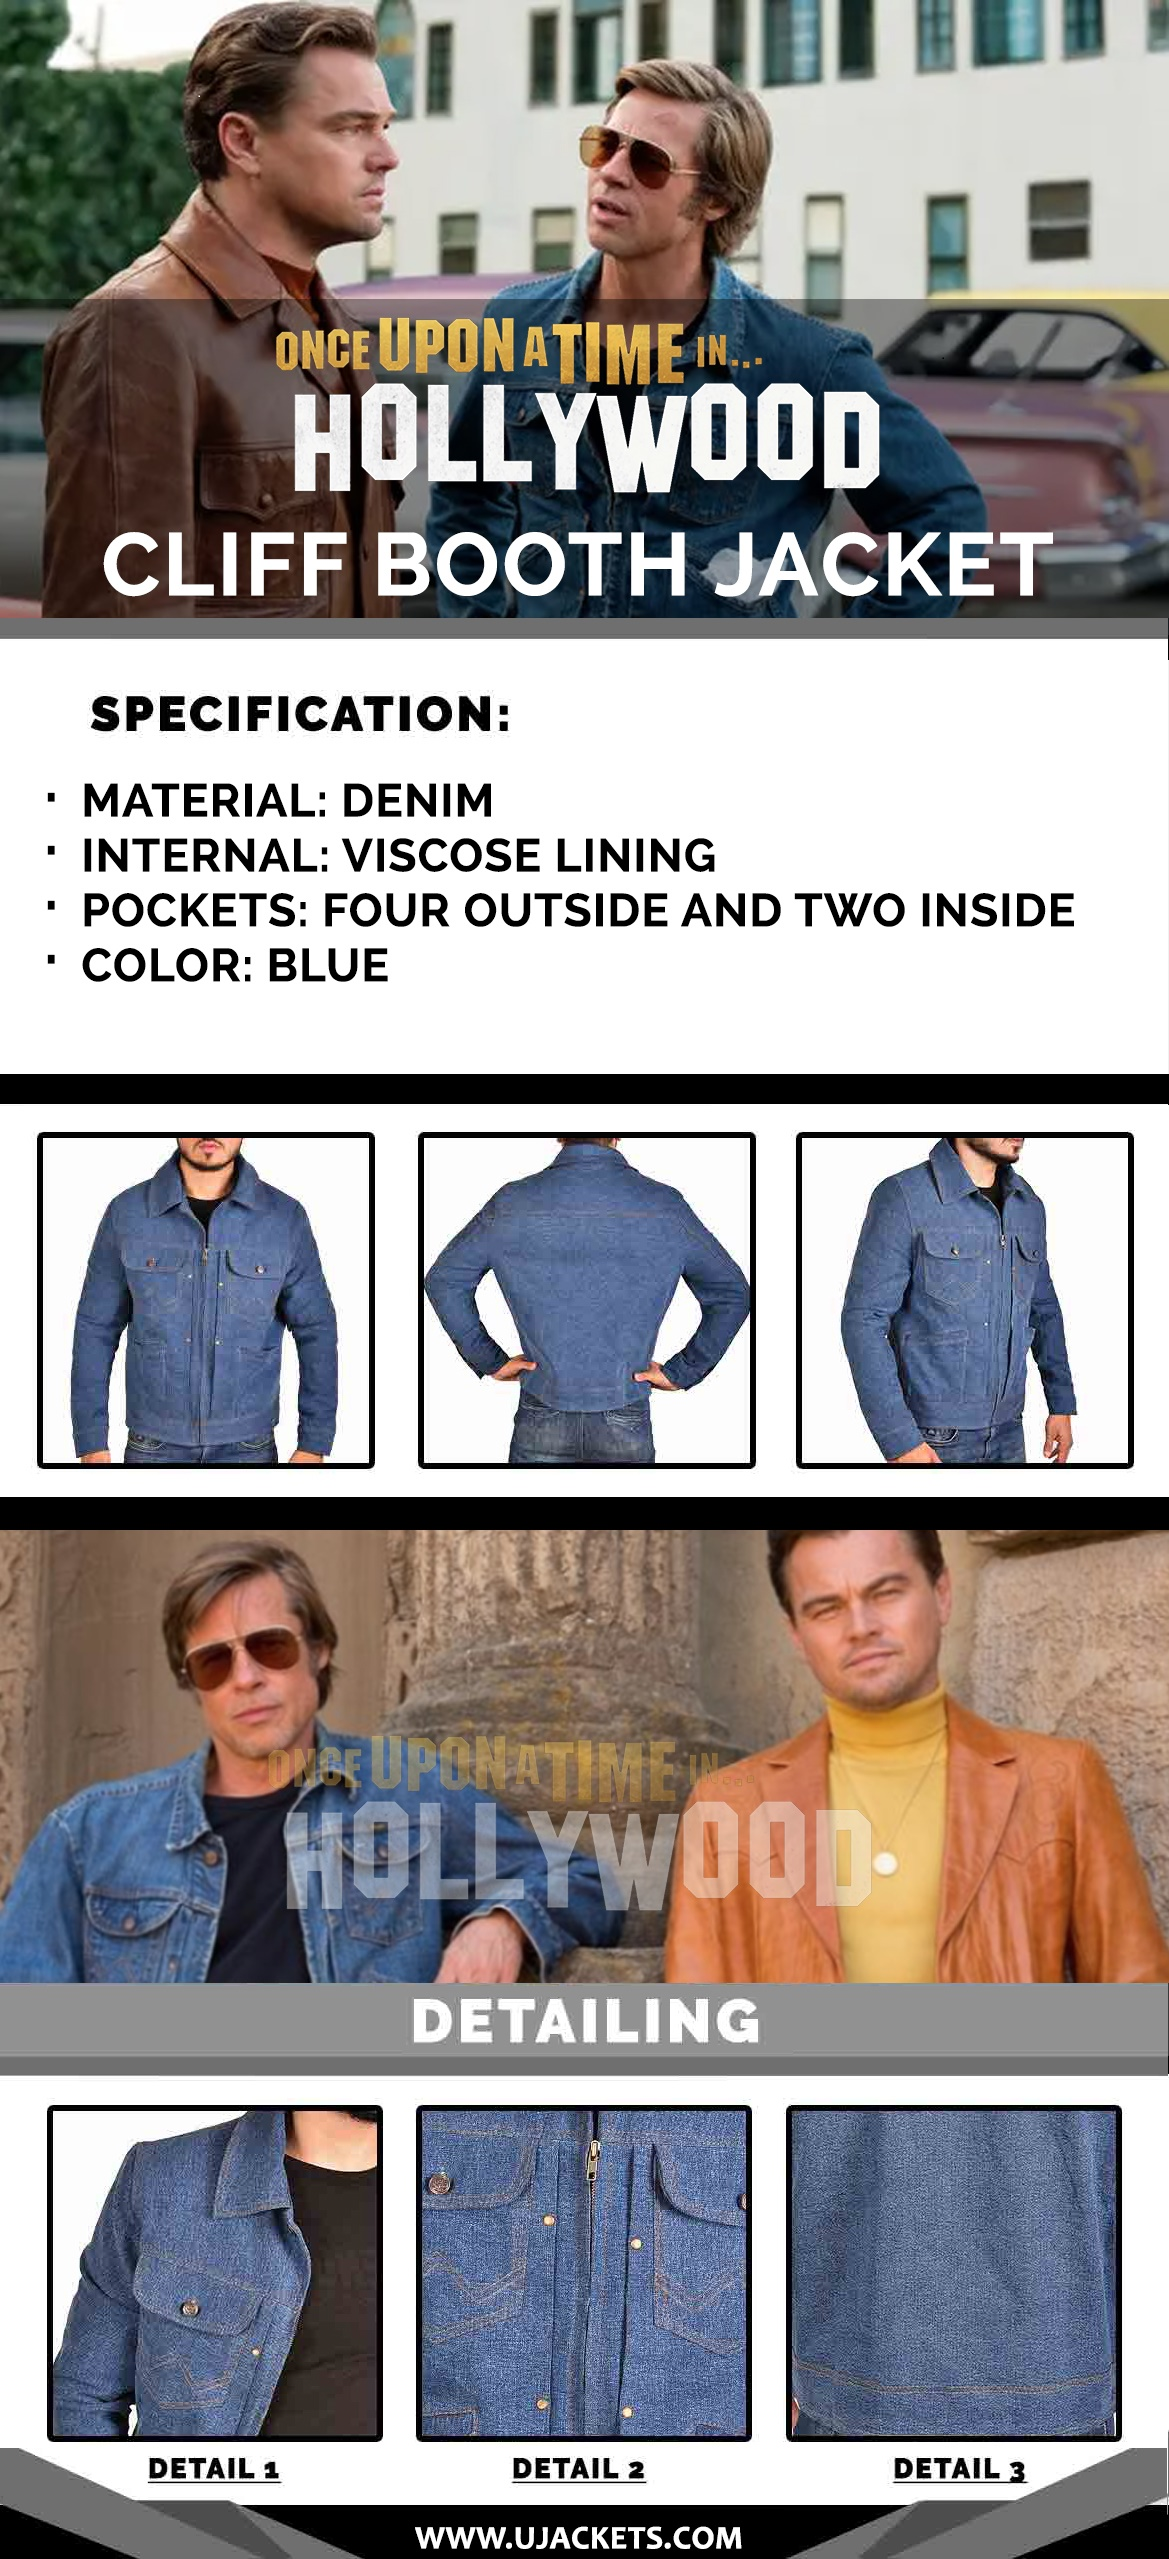 Once-Upon-A-Time-In-Hollywood-Cliff-Booth-Jacket (1)